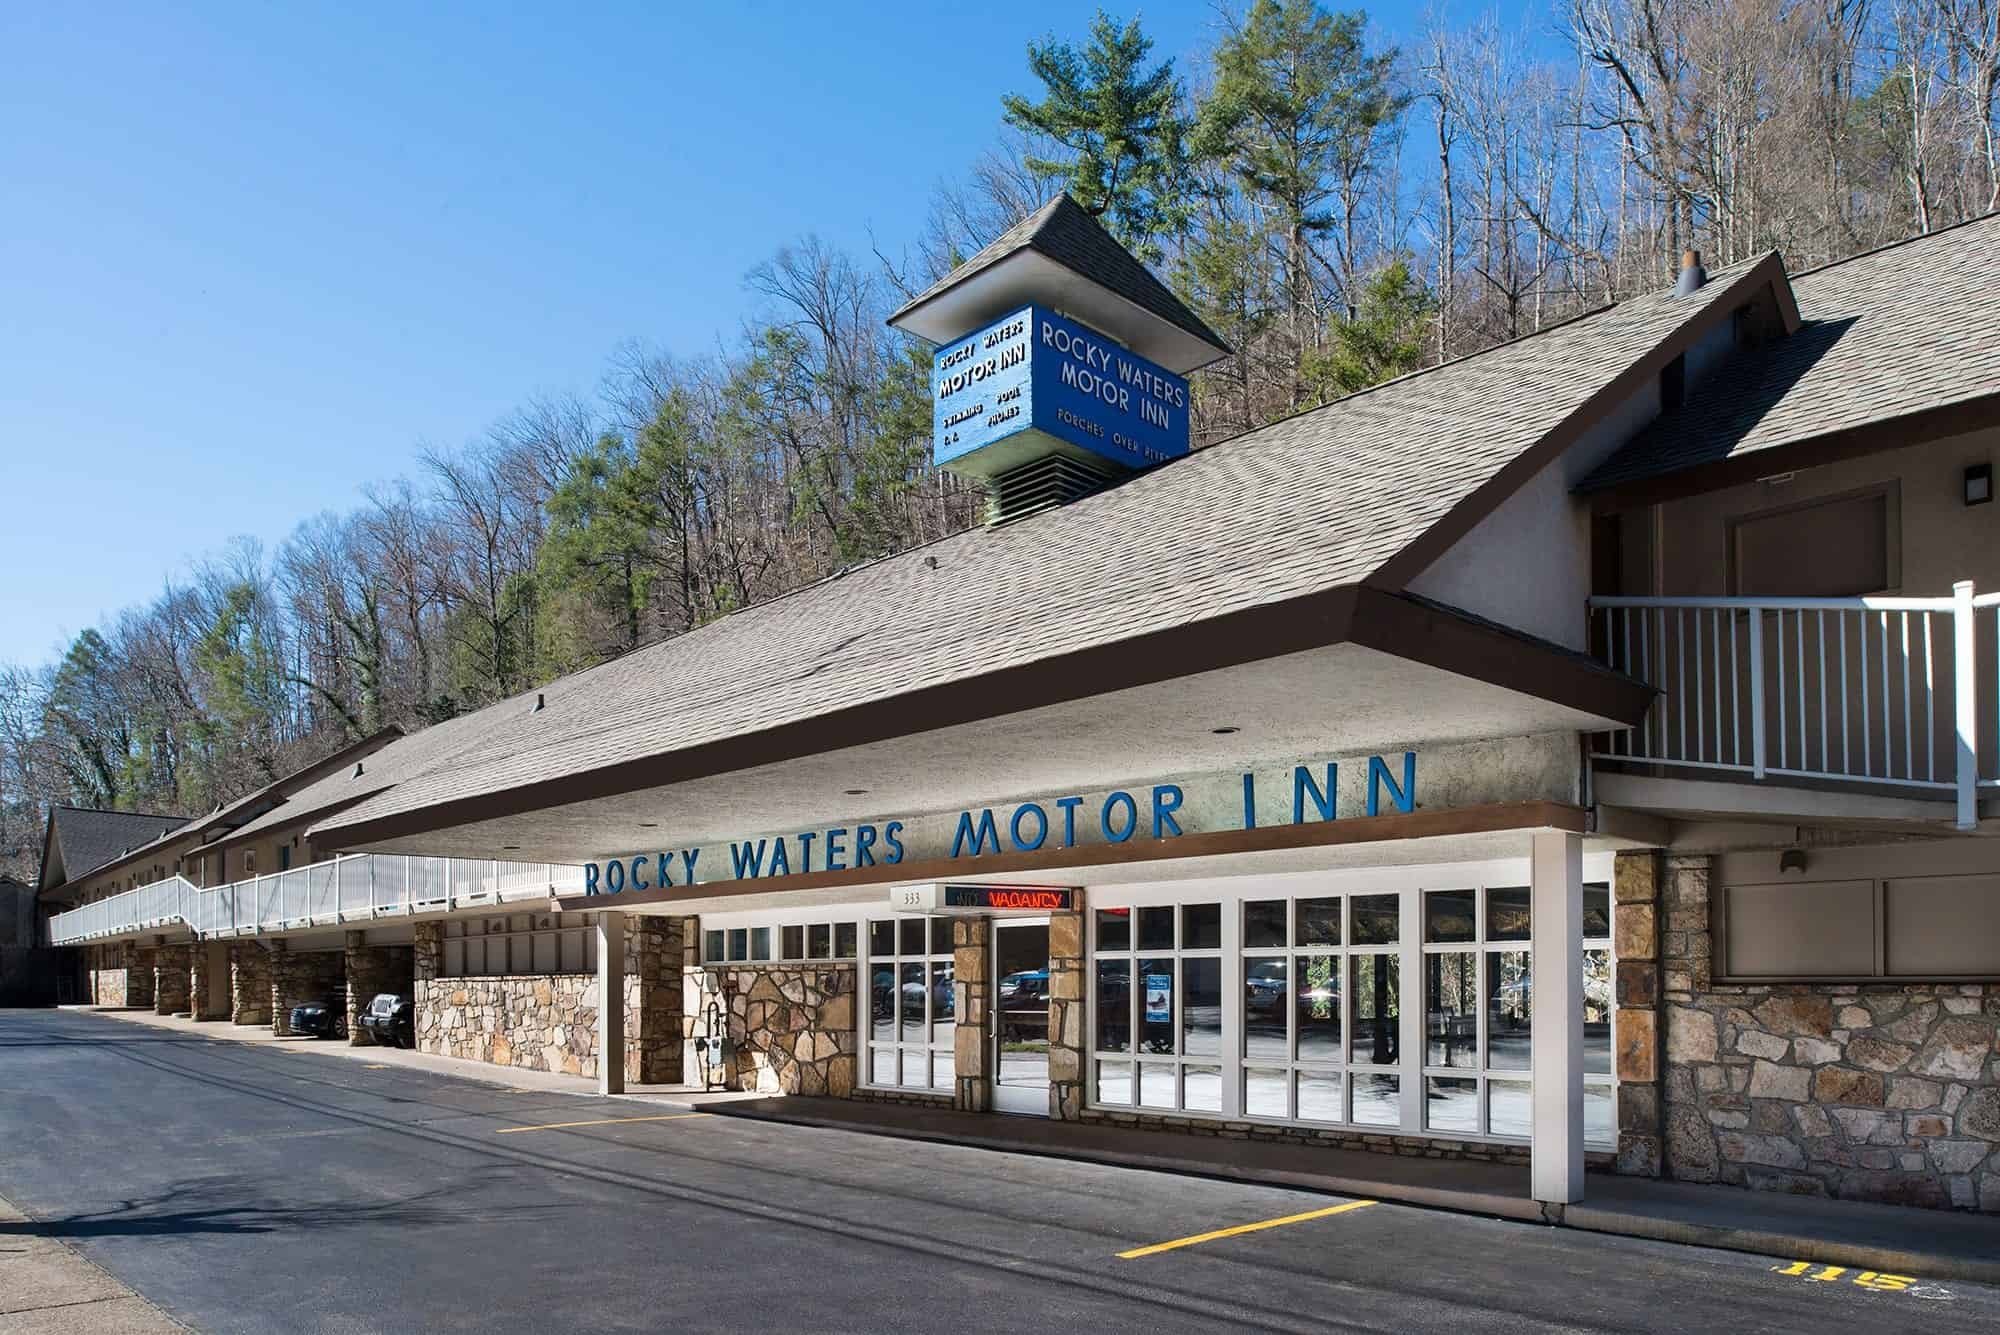 Rocky Waters Motor Inn exterior